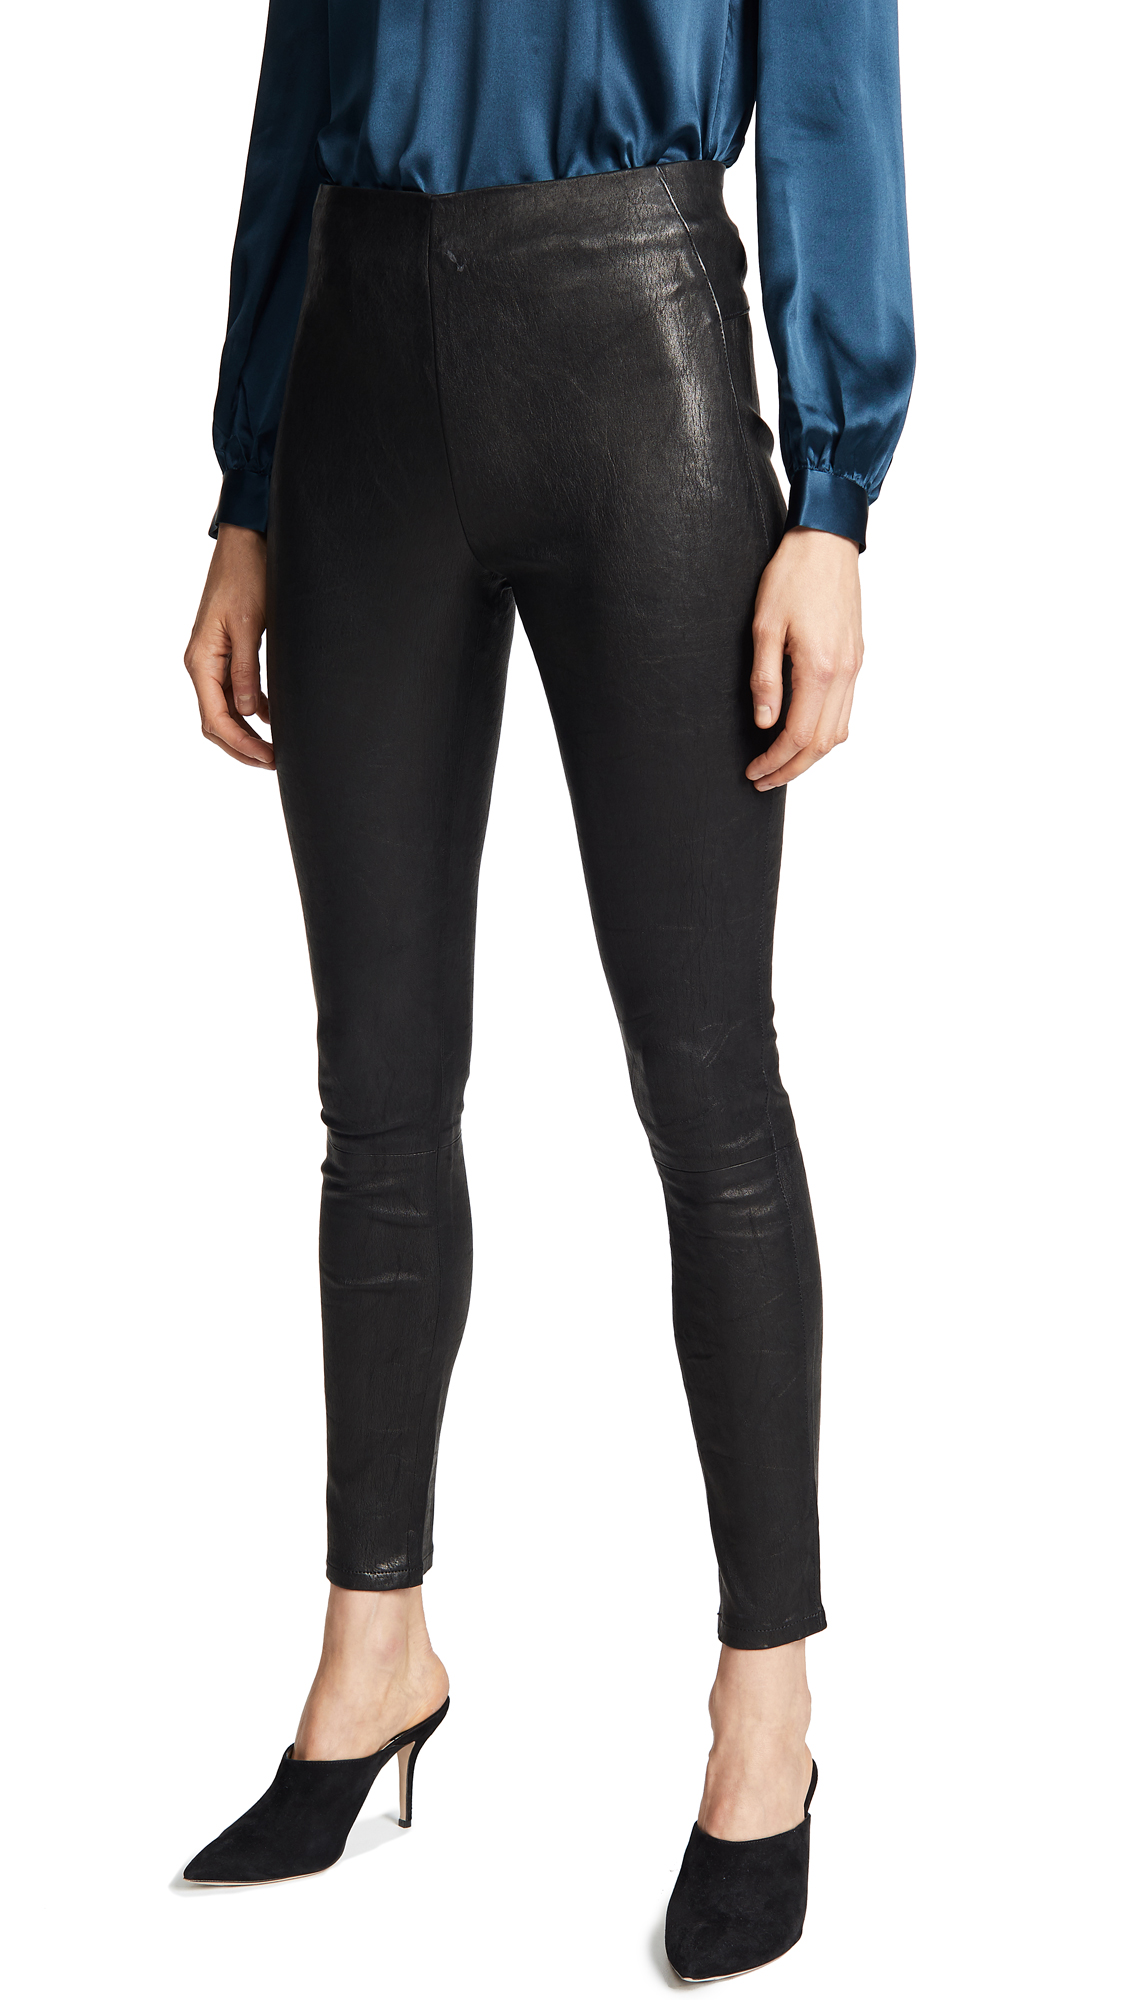 INDY LEATHER LEGGINGS